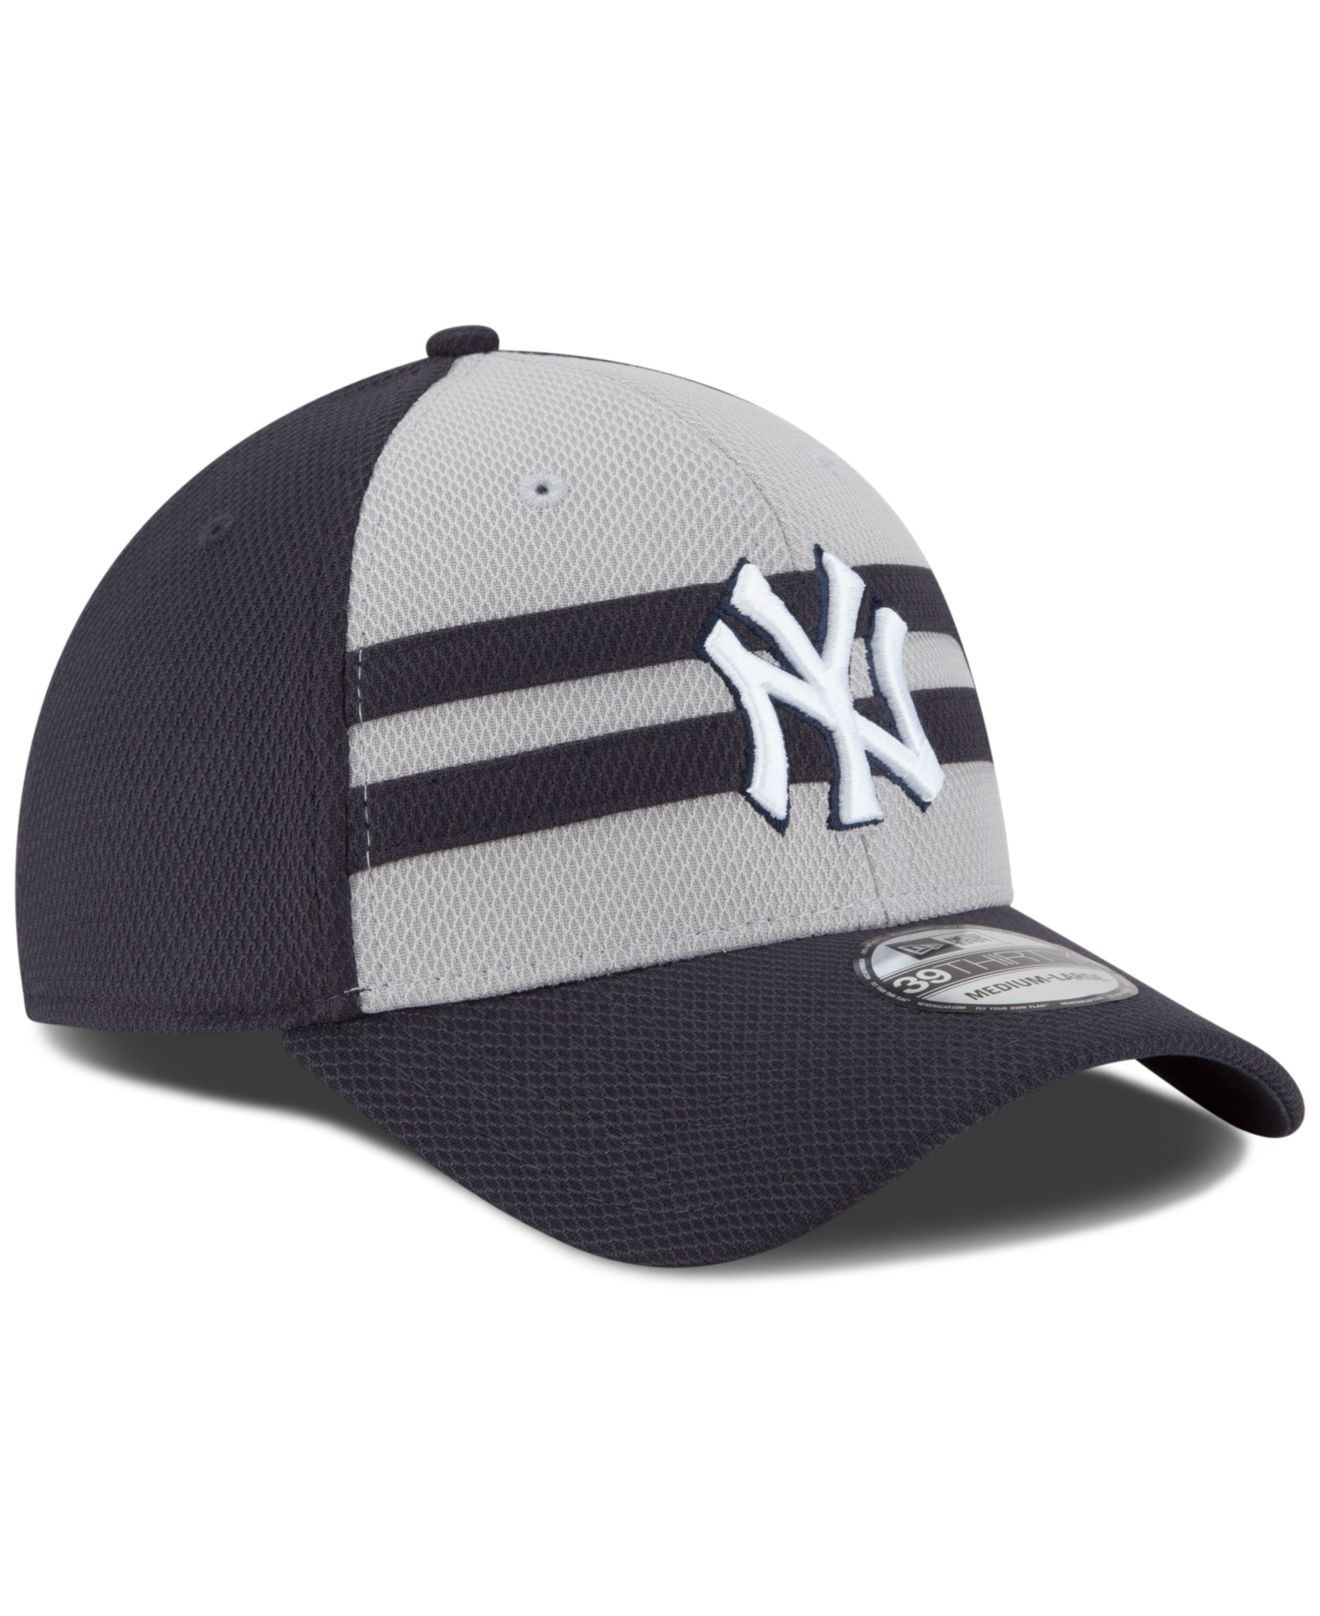 5f0a4d5b22268f sale shop hurley caps hatstore b6f05 2d070 new zealand lyst ktz new york  yankees 2015 all